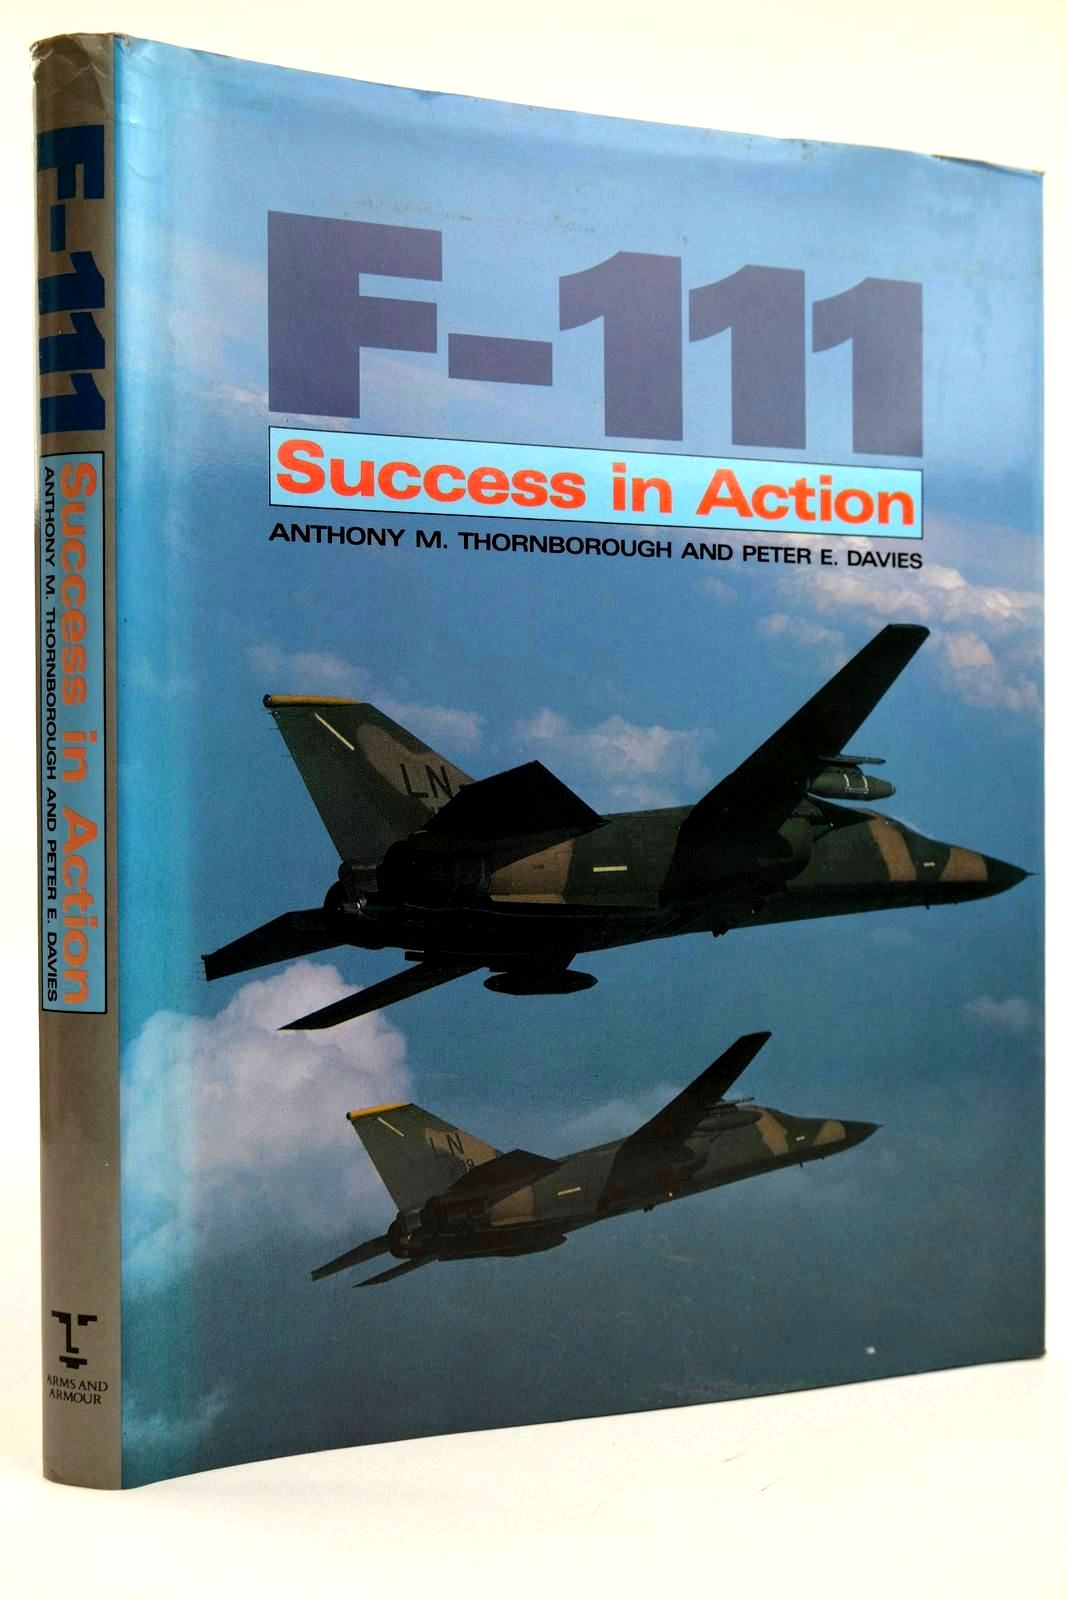 Photo of F-111 SUCCESS IN ACTION written by Thornborough, Anthony M. Davies, Peter E. published by Arms & Armour Press (STOCK CODE: 2132035)  for sale by Stella & Rose's Books